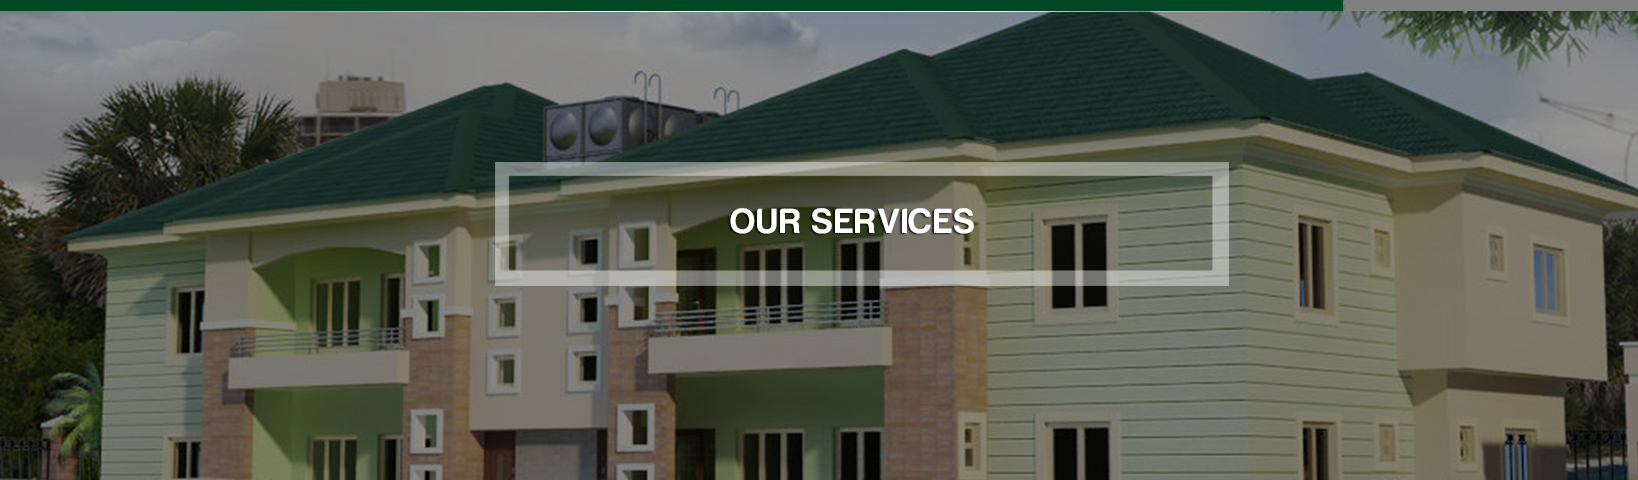 allview-designs-iour-services